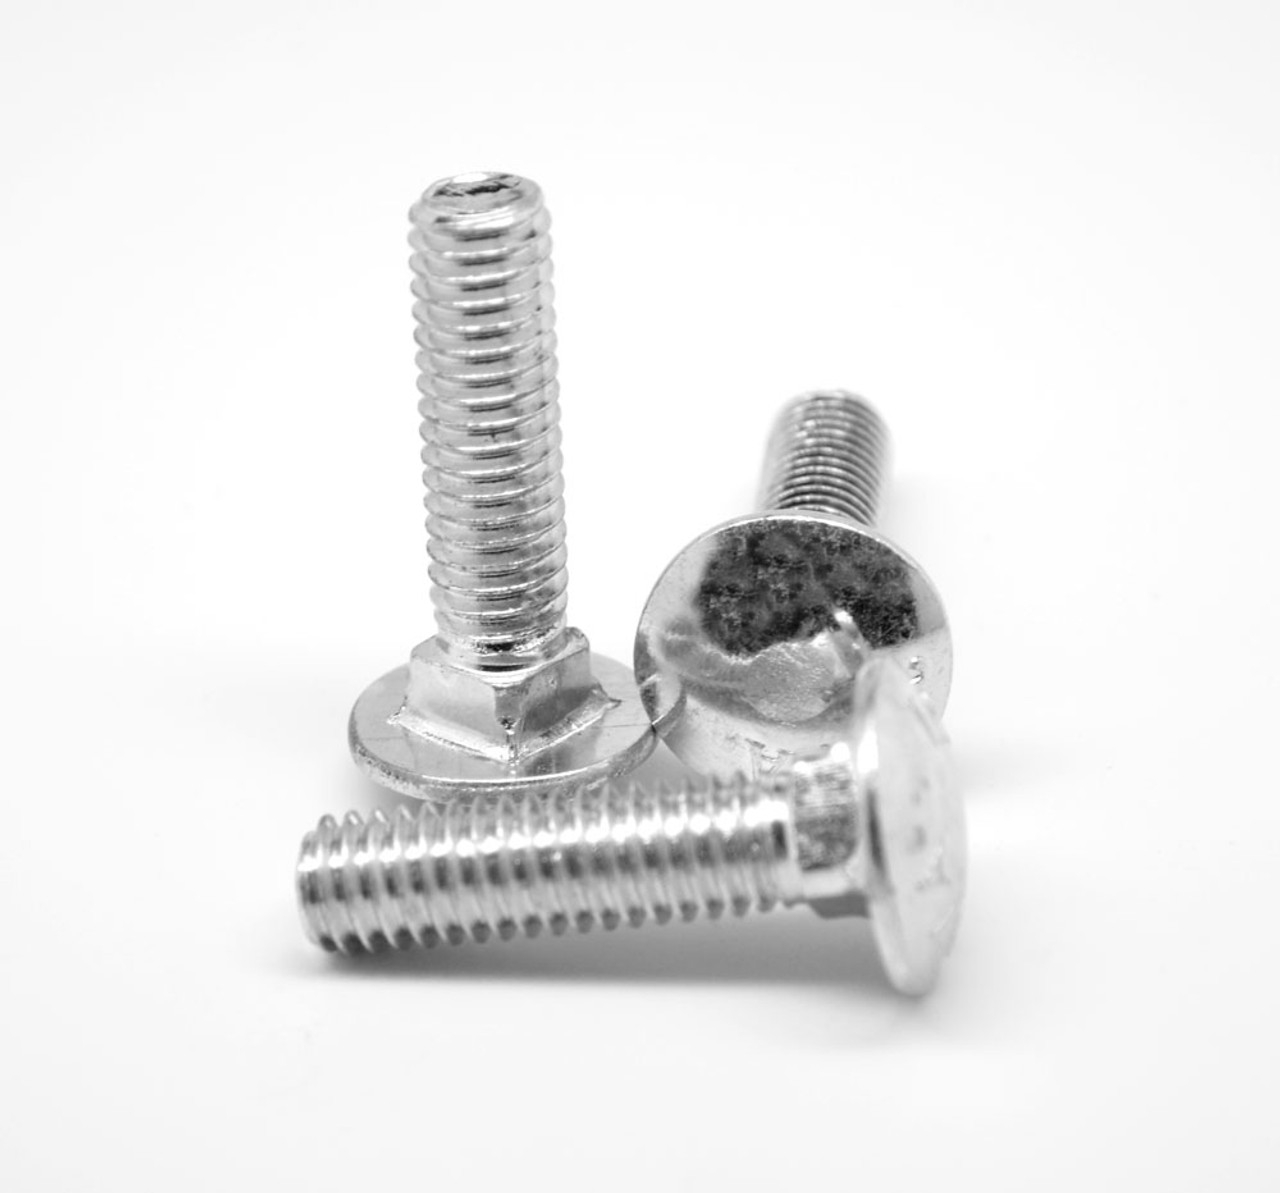 """#10-24 x 1 3/4"""" (FT) Coarse Thread A307 Grade A Carriage Bolt Low Carbon Steel Zinc Plated"""